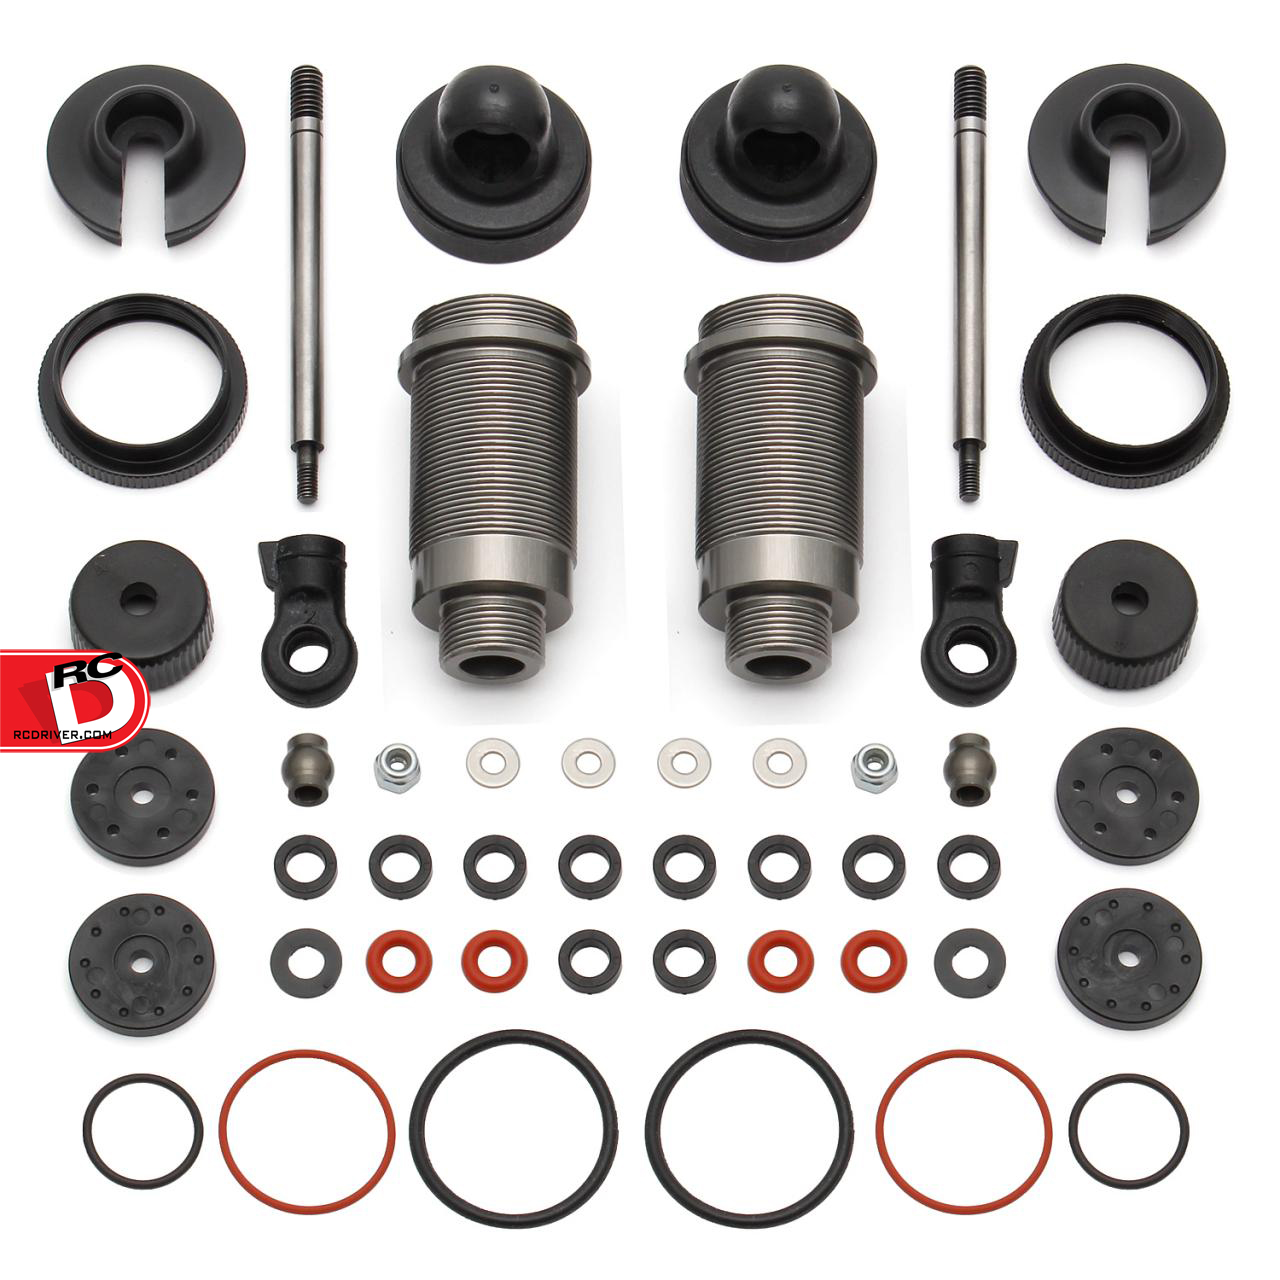 FT ProLite 4×4, ProSC 4×4, and ProRally 16mm Threaded Aluminum Shock Kit for Qualifier 4×4 Series